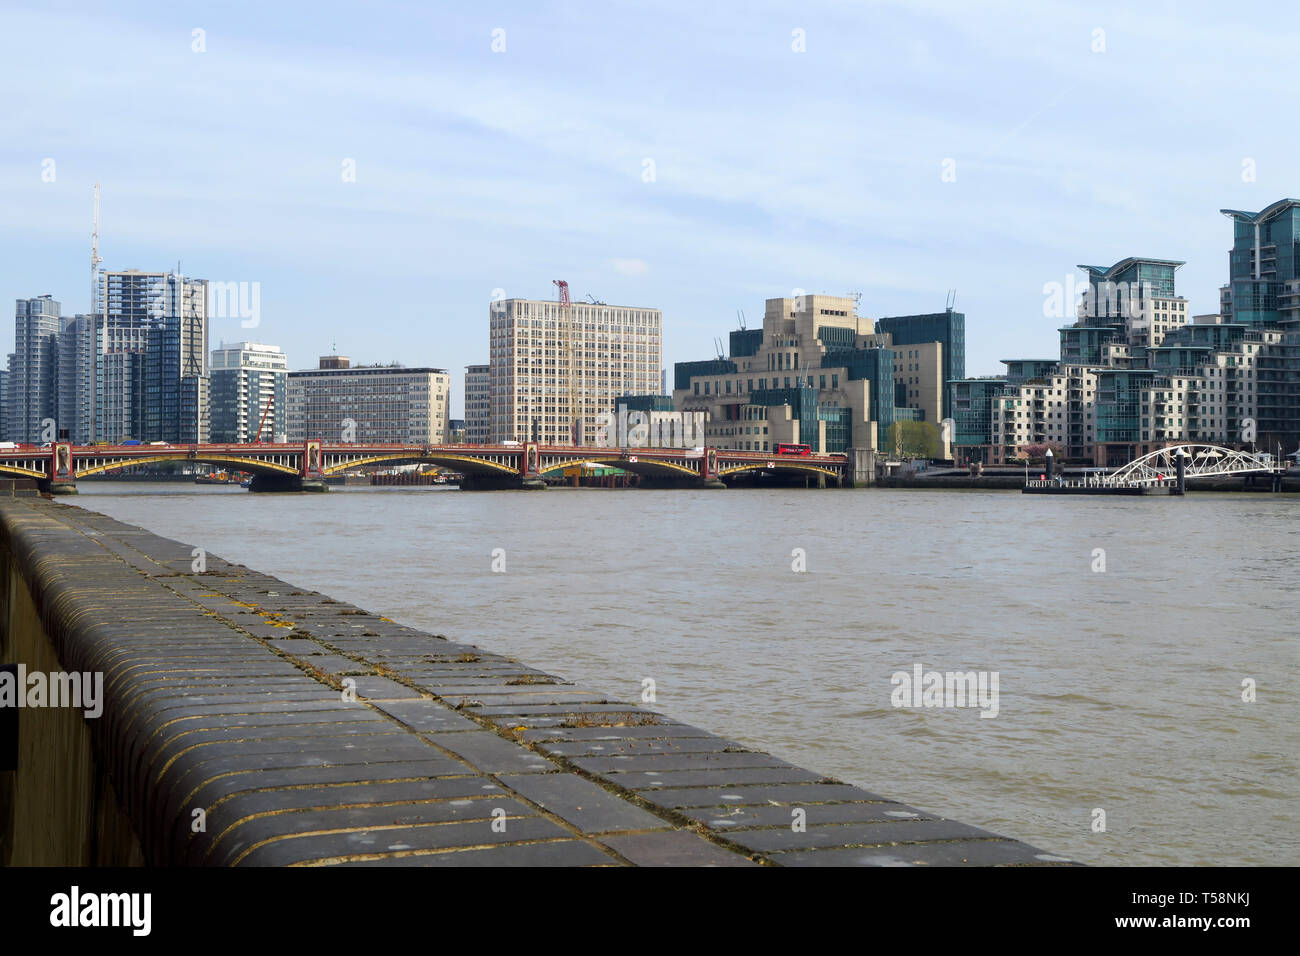 The MI6 Building stands on the south bank of the River Thames by Vauxhall Bridge, London Stock Photo